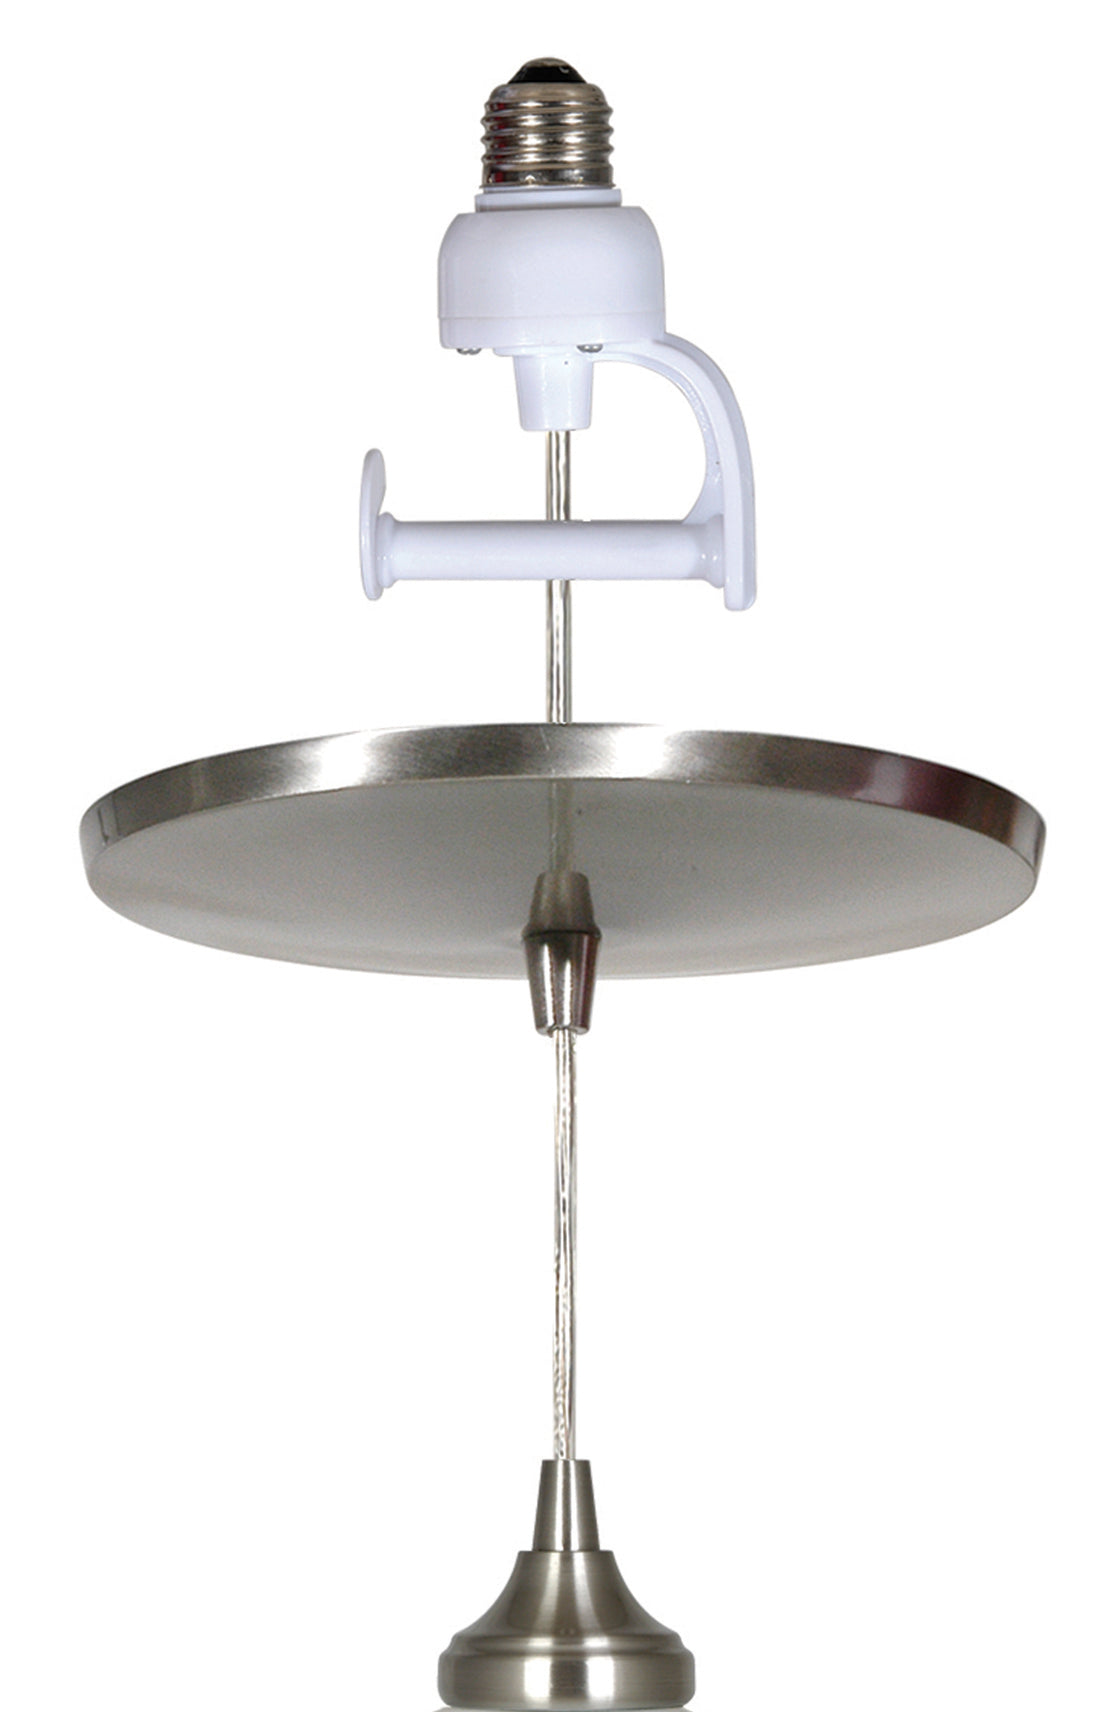 Instant Pendant Light - Brushed Nickel Adapter only PAN-1100 - Worth Home Products